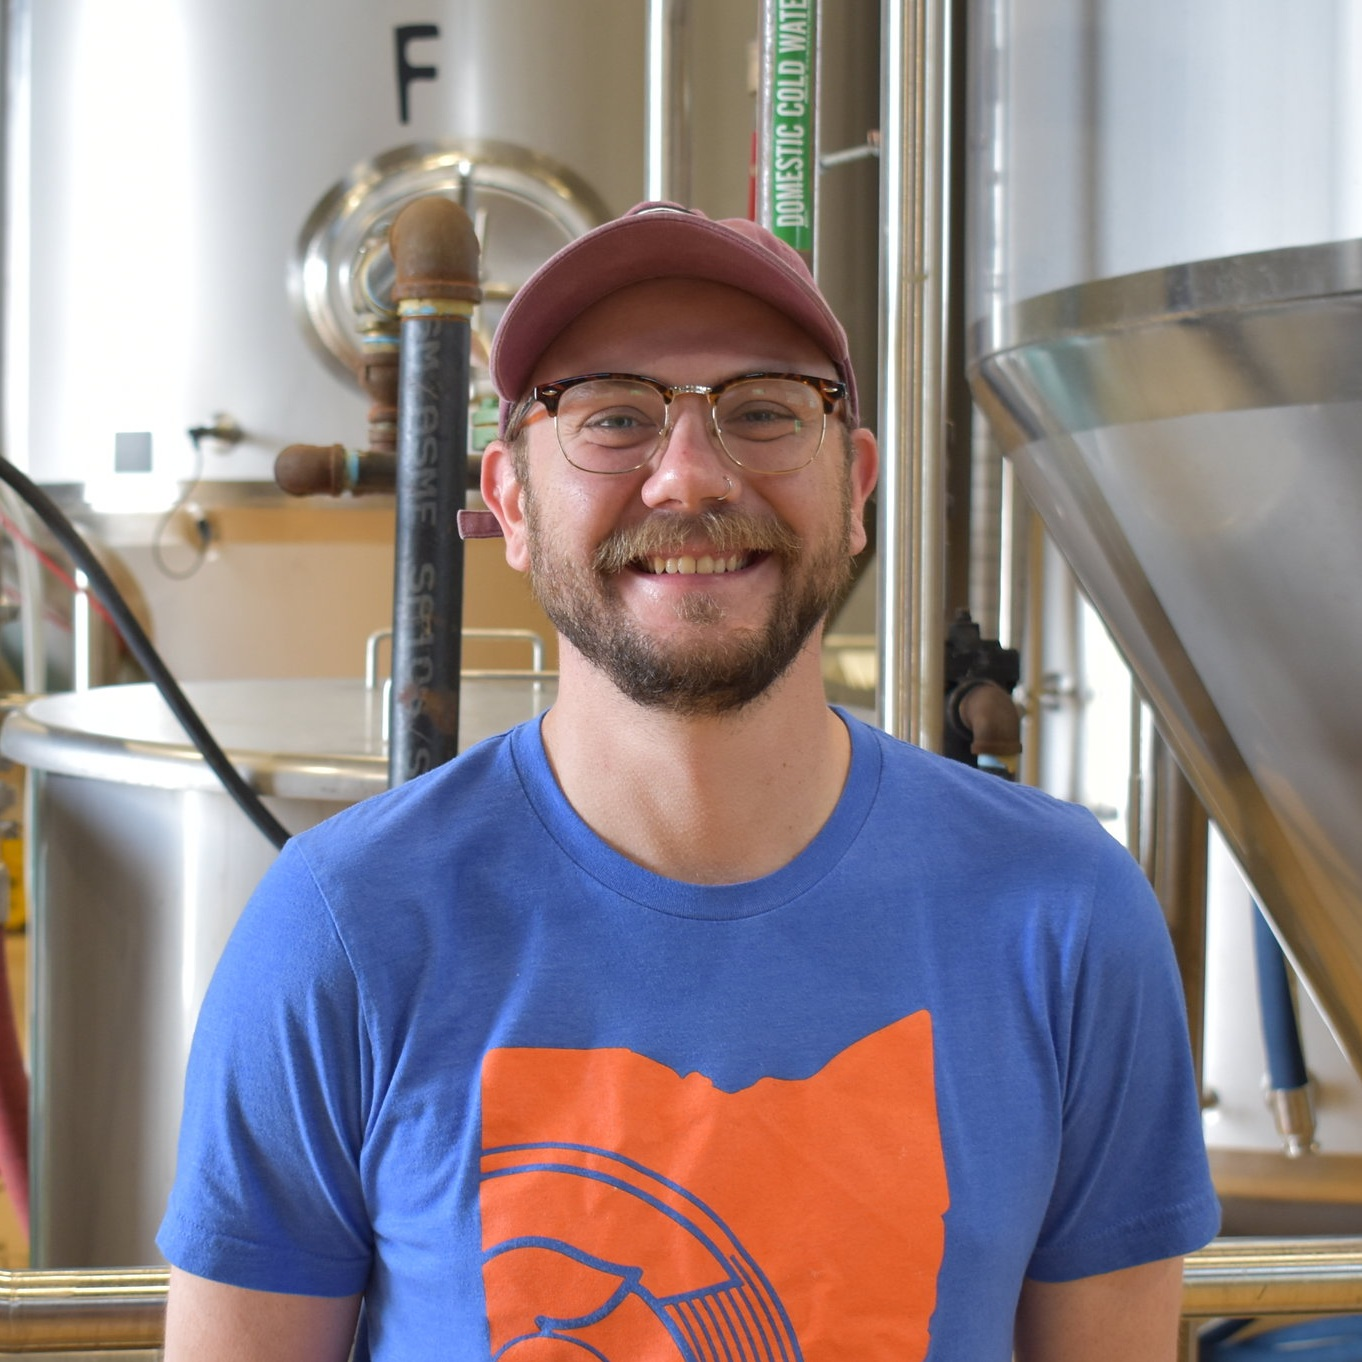 Ross - Shift Lead   Ross spends his free time traveling, visiting amusement parks, and playing both golf and disc golf. In another life he claims to have been a meerkat, which would be a pretty cool animal to be. He got his start in craft beer working in OTR in the mid 2000s when that area started to blow up with craft beer. He loves Belgian style beers, specifically Belgian tripels, and at Sonder he loves drinking Blanc